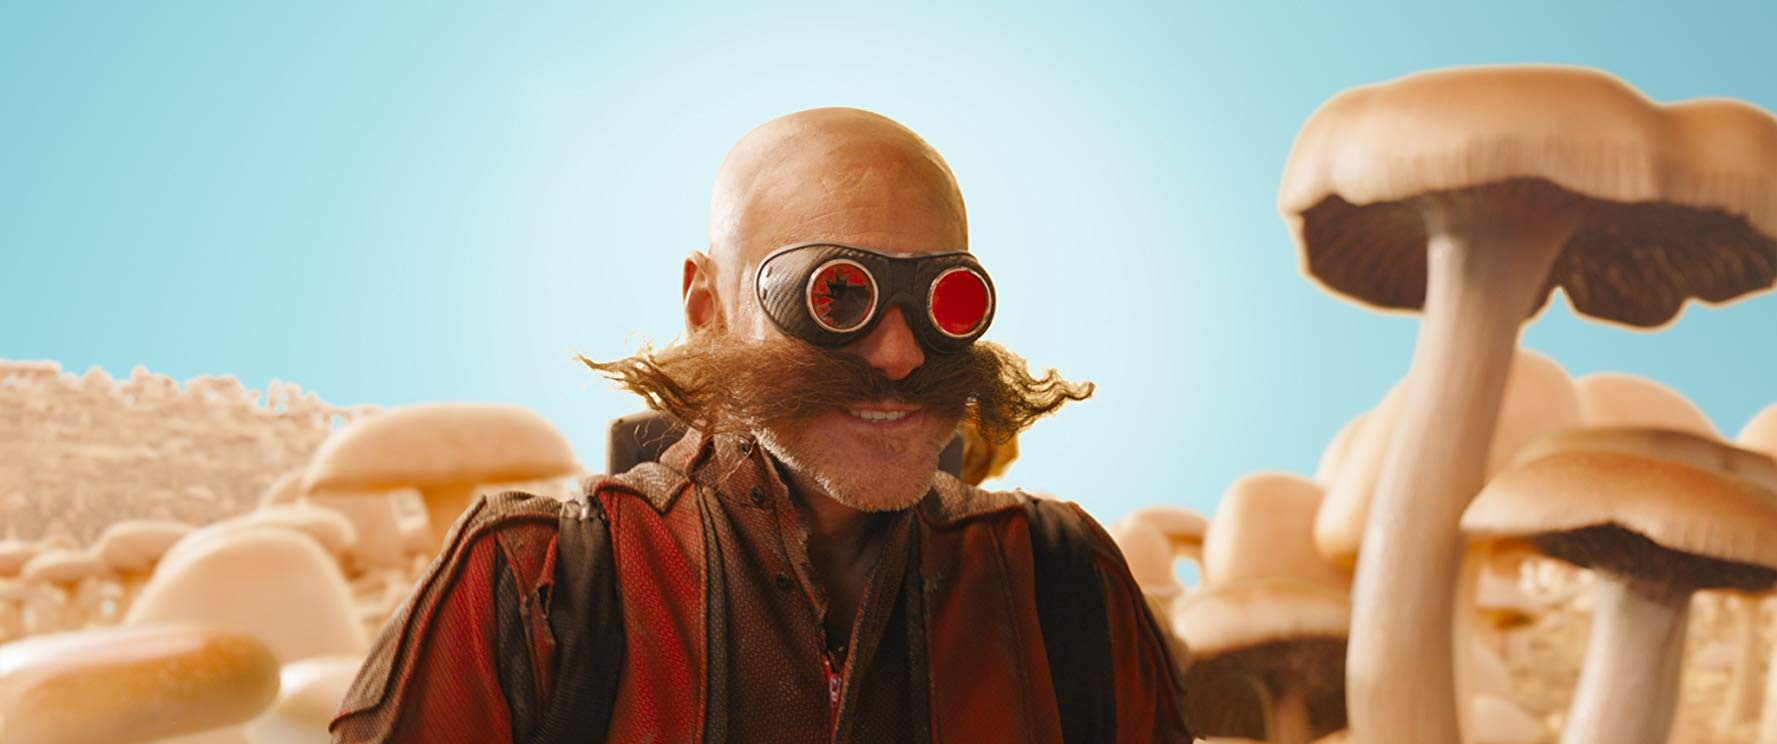 Jim Carrey as Robotnik in 'Sonic the Hedgehog'